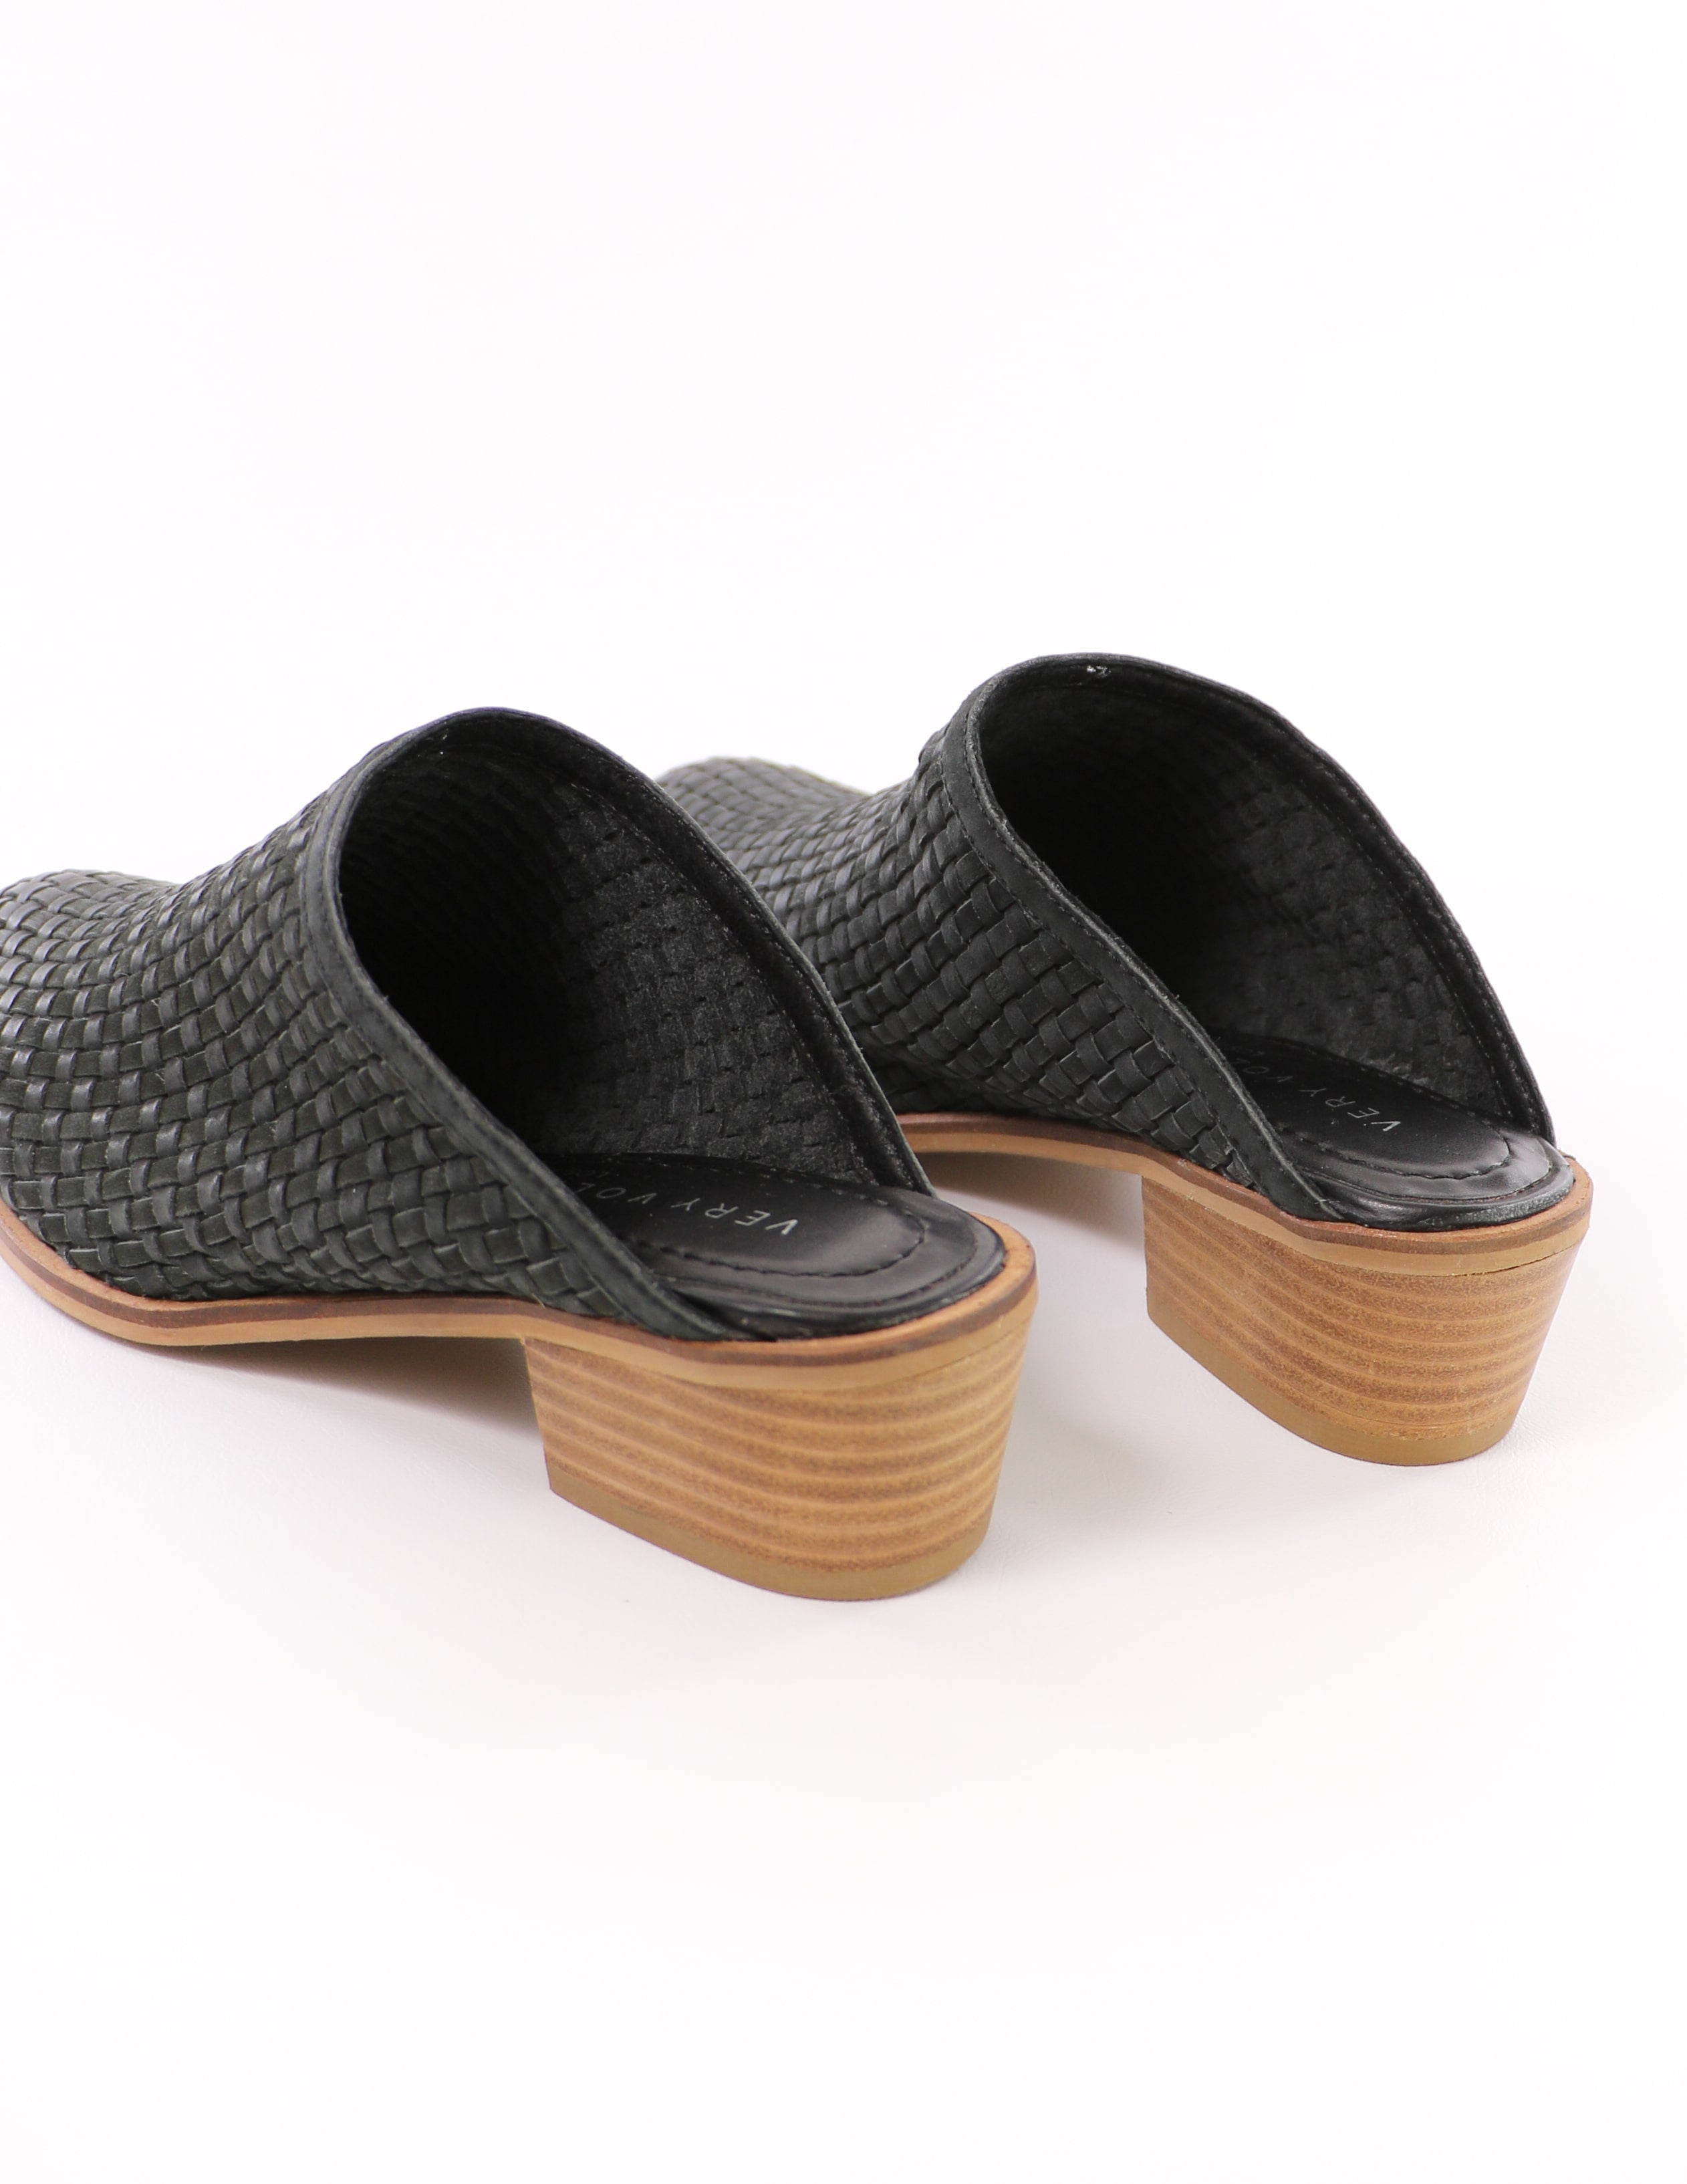 black volatile the woven one mule with genuine leather insole - elle bleu shoes